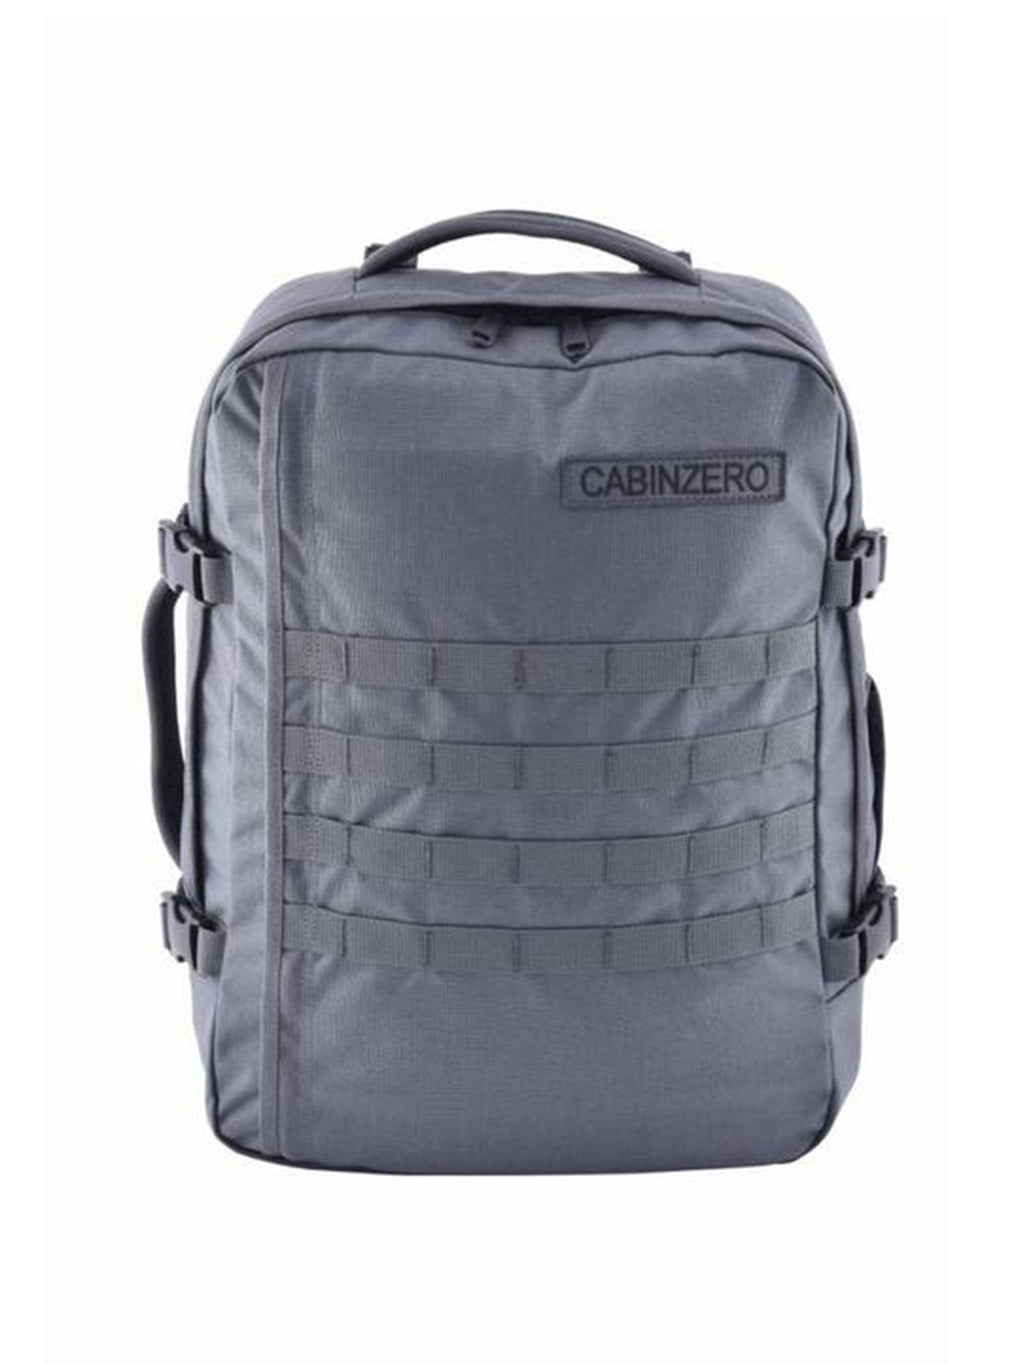 Cabinzero Military 36L in Military Grey Color - This Is For Him